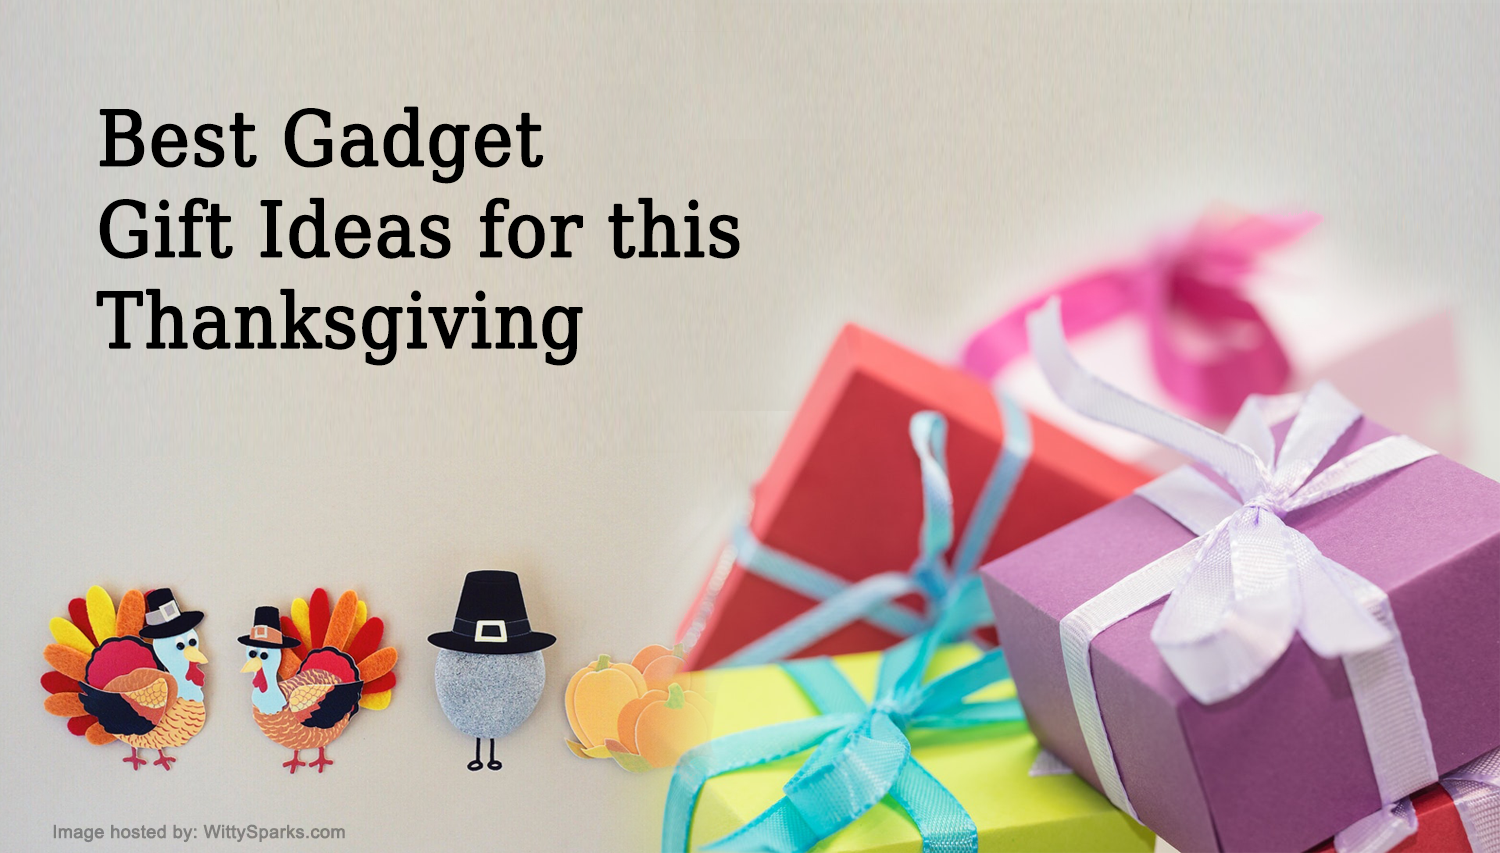 Thanksgiving Day: Best Gadget Gift Ideas for this Year